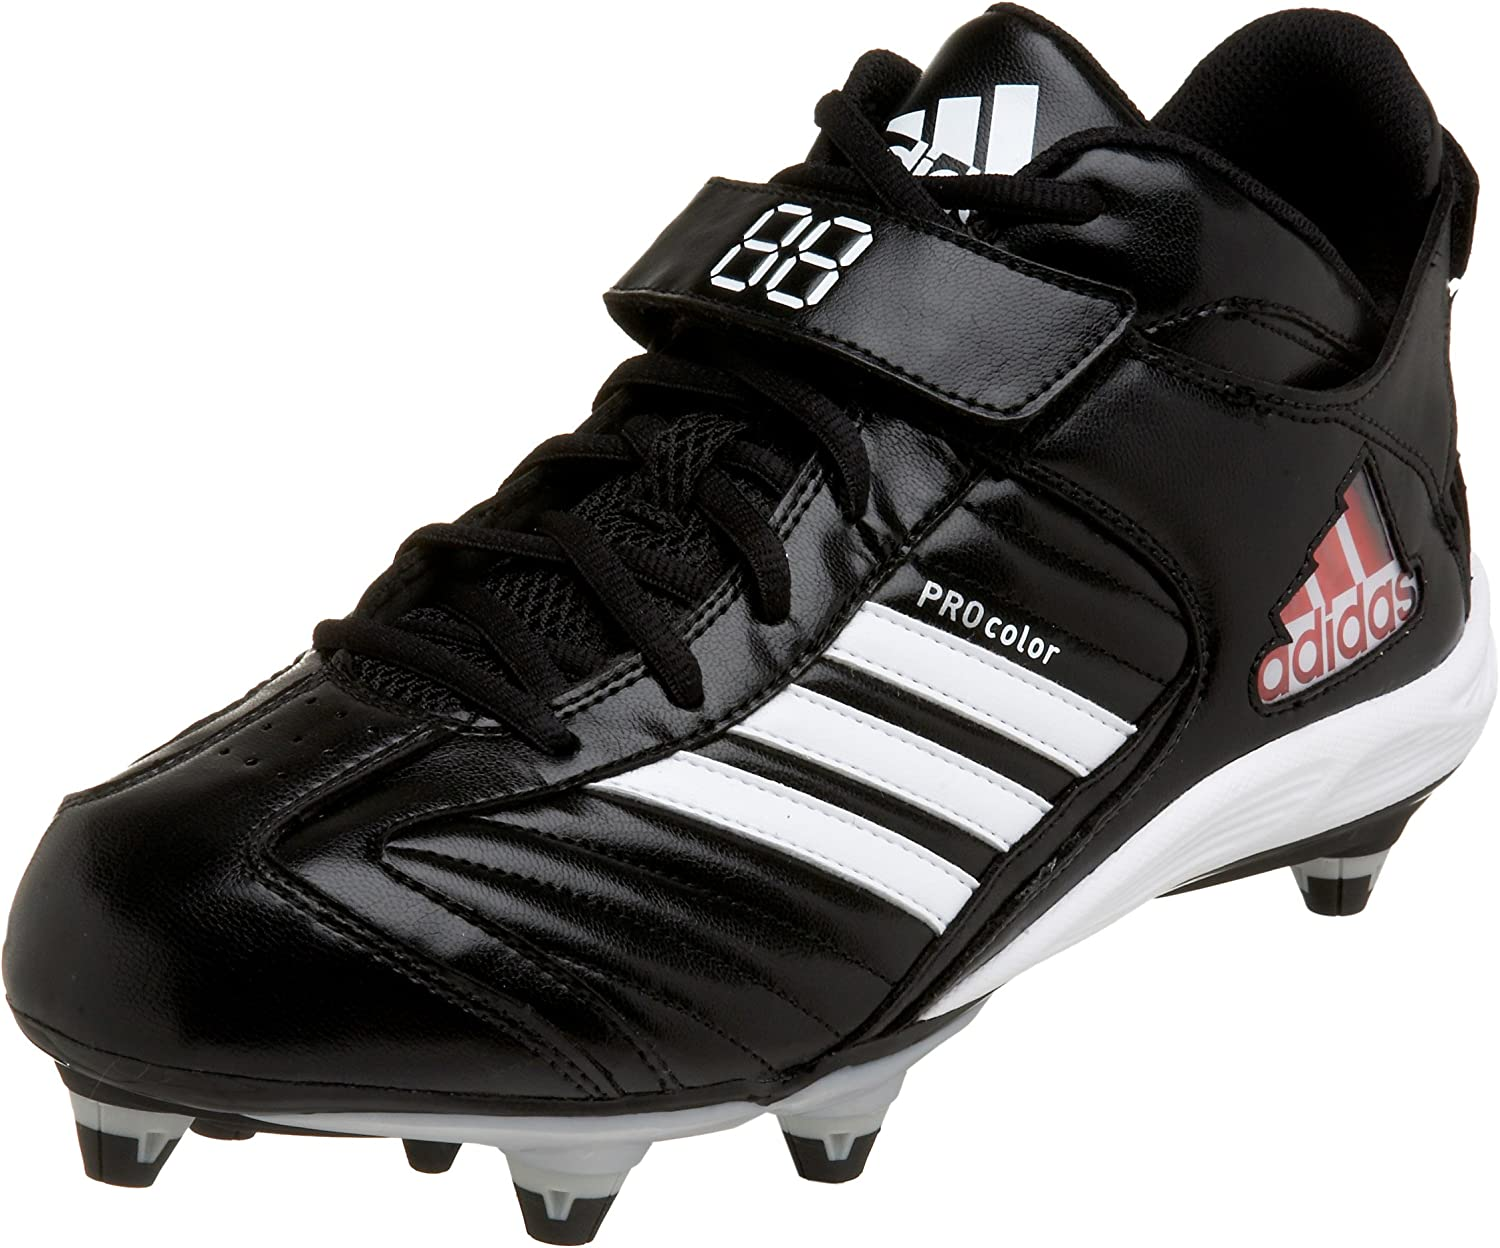 Adidas Men's Pro color 2 D Mid Football Cleat